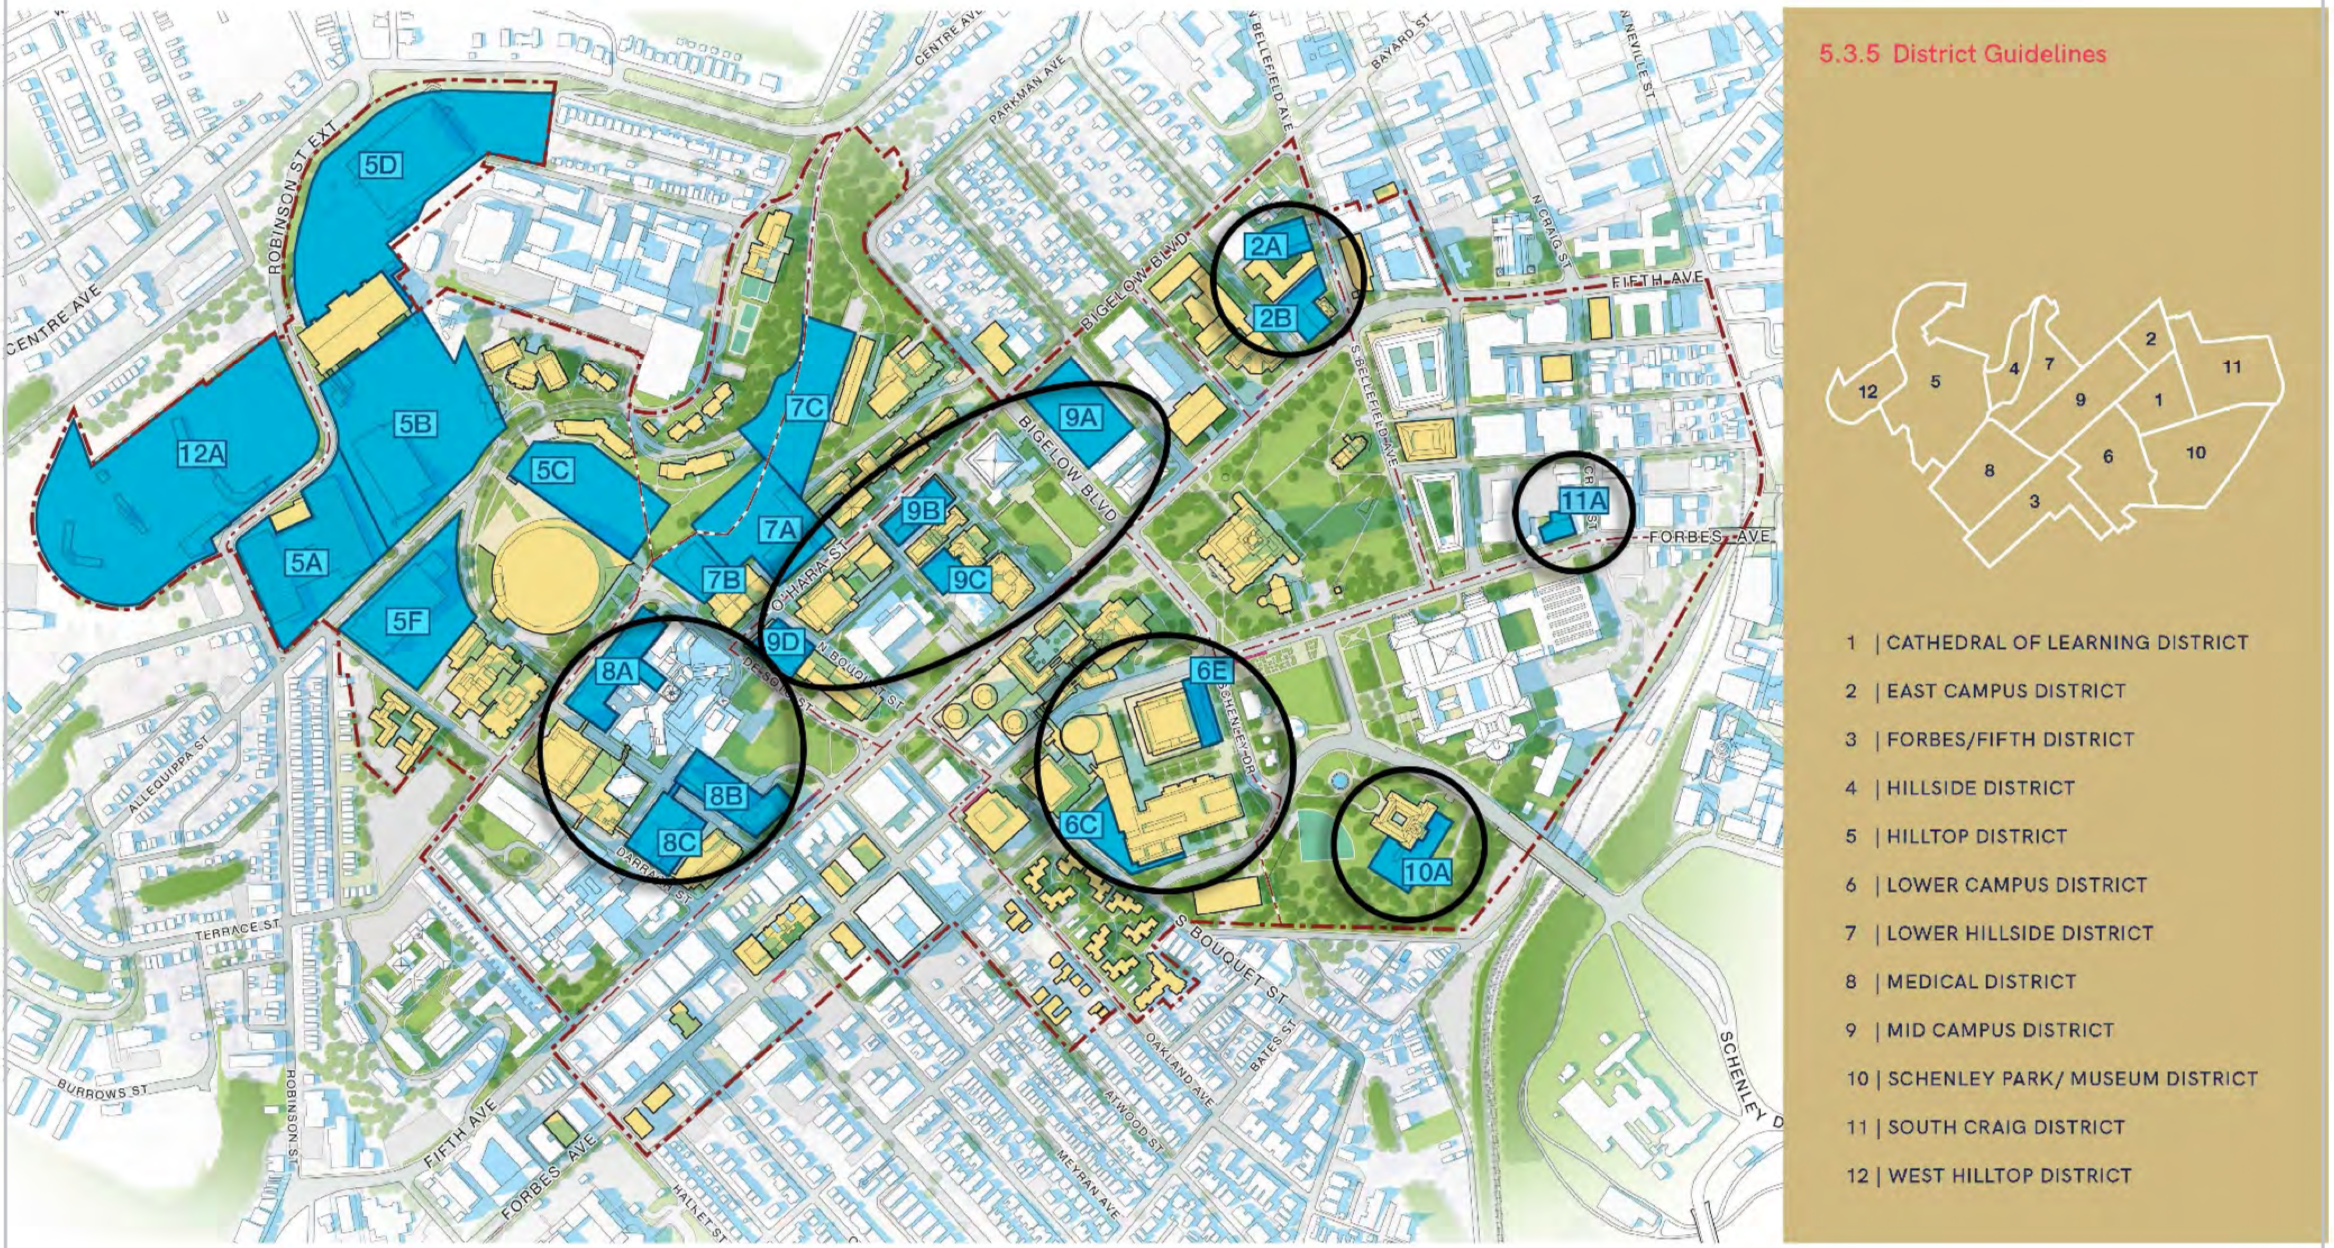 Map showing areas of the University of Pittsburgh campus about which Pitt officials briefed the City Planning Commission on March 23, 2021.